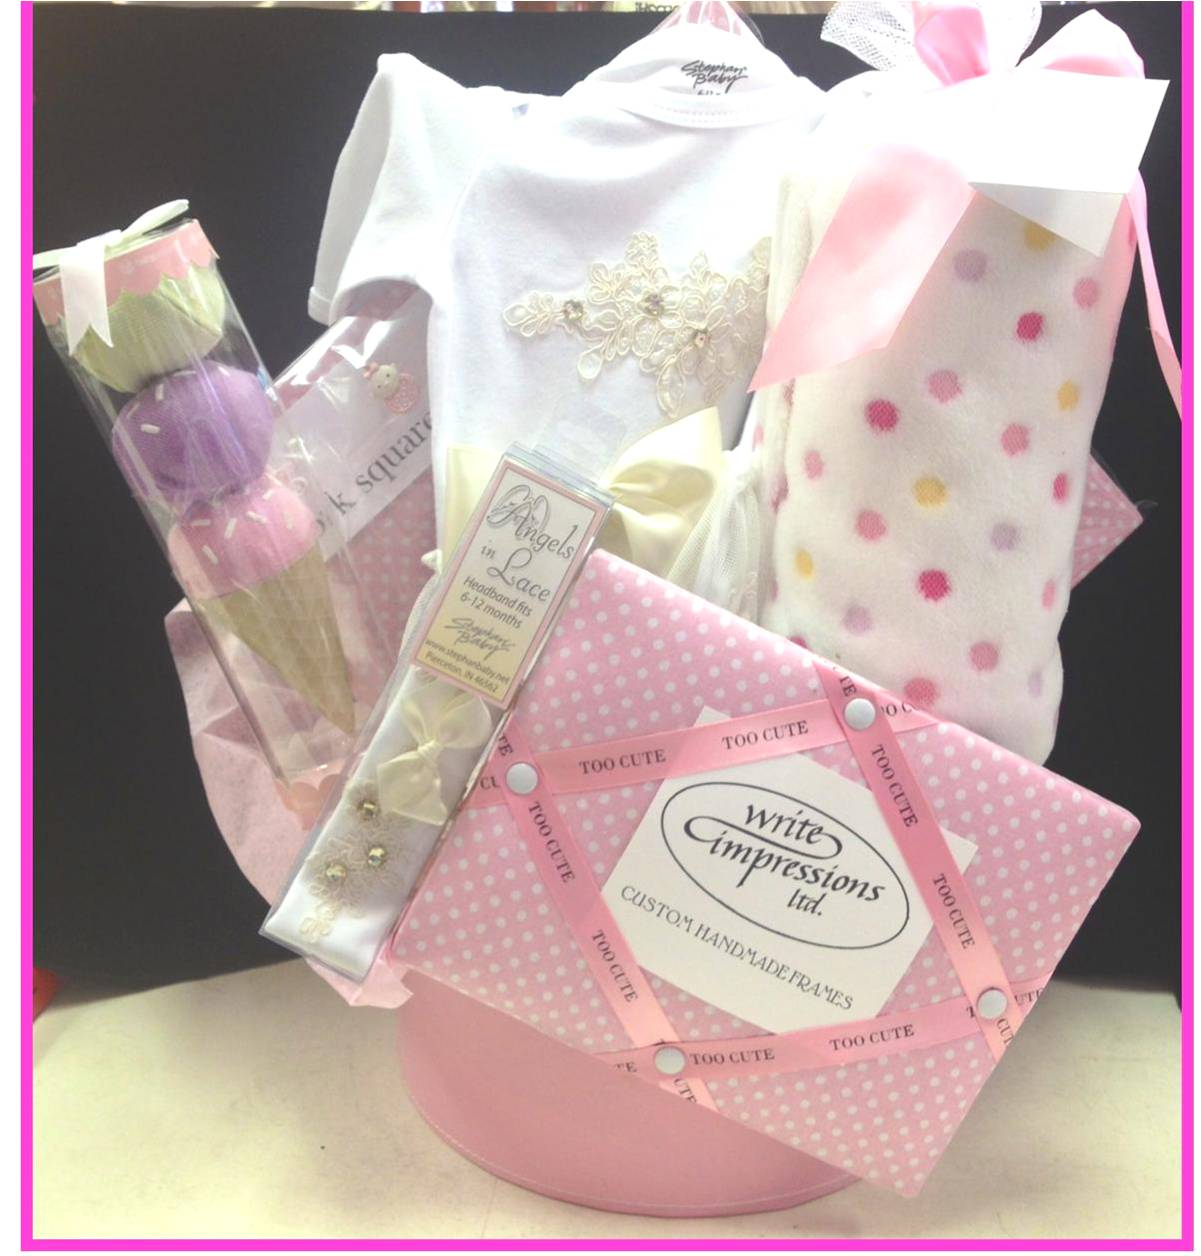 Holiday Gifts & Baskets, The Pampered Professional, Ltd. HEWLETT, NY ...